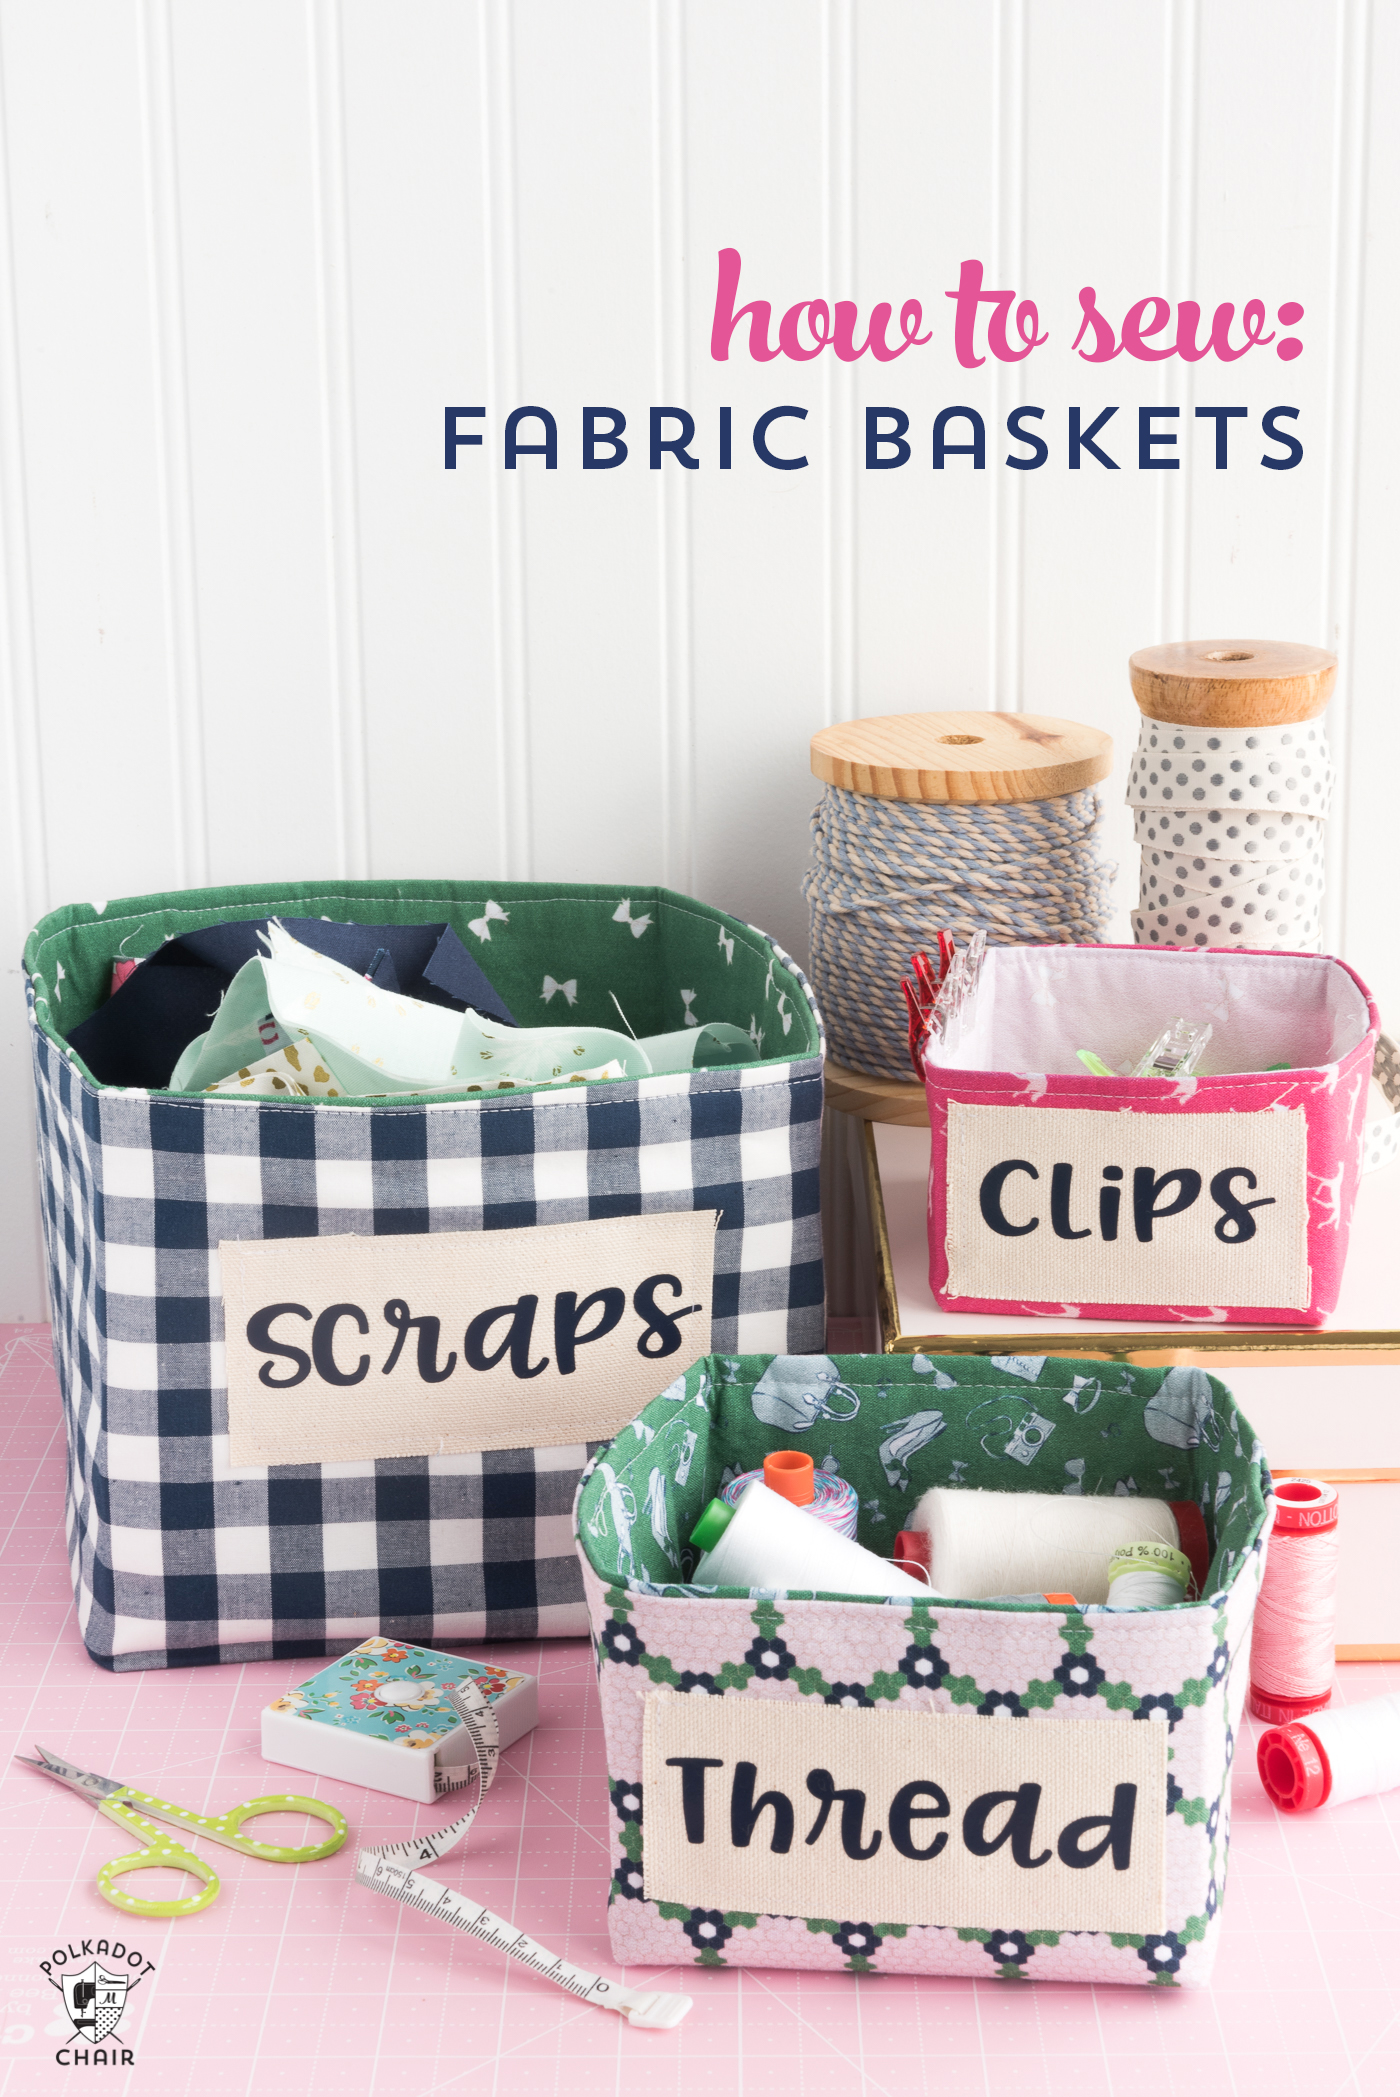 How to Sew Fabric Baskets with the Cricut Maker • Polkadot Chair